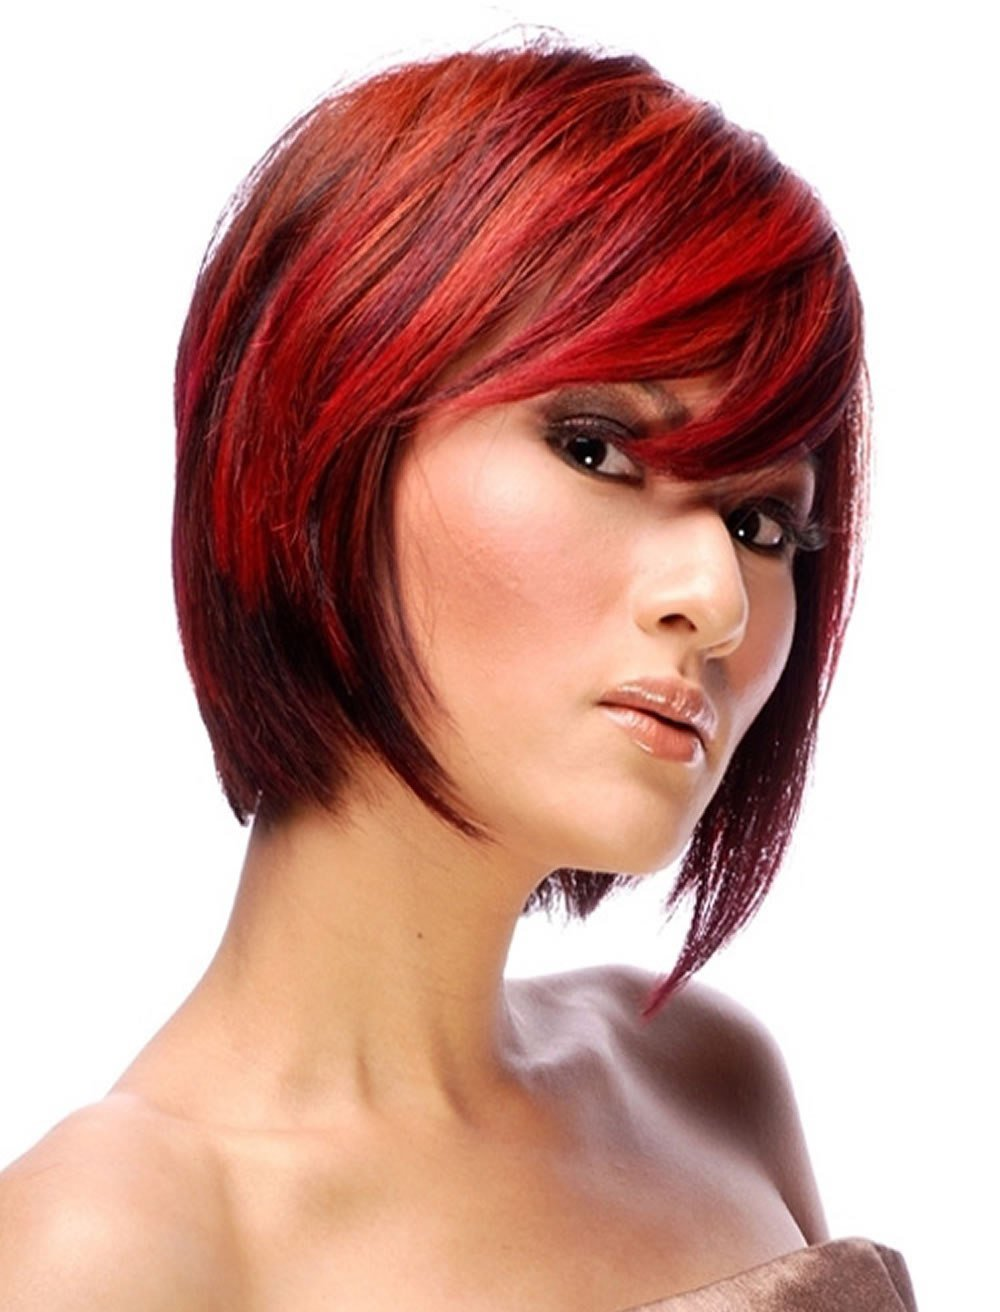 The Best Red Hair Color For Short Hairstyles 27 Cool Haircut Pictures